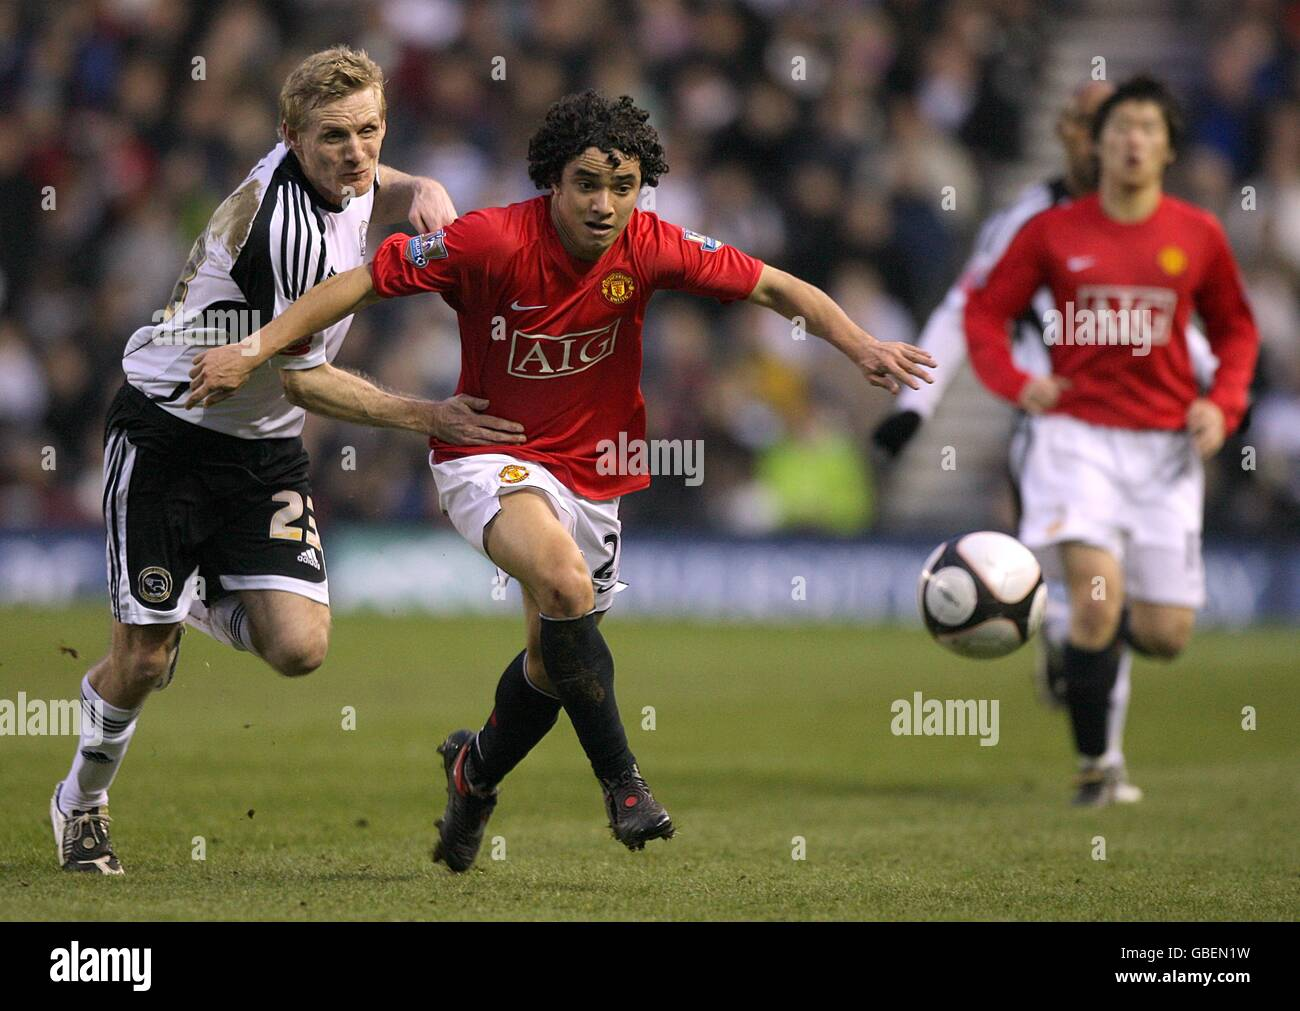 Soccer - FA Cup - Fifth Round - Derby County v Manchester United - Pride Park - Stock Image